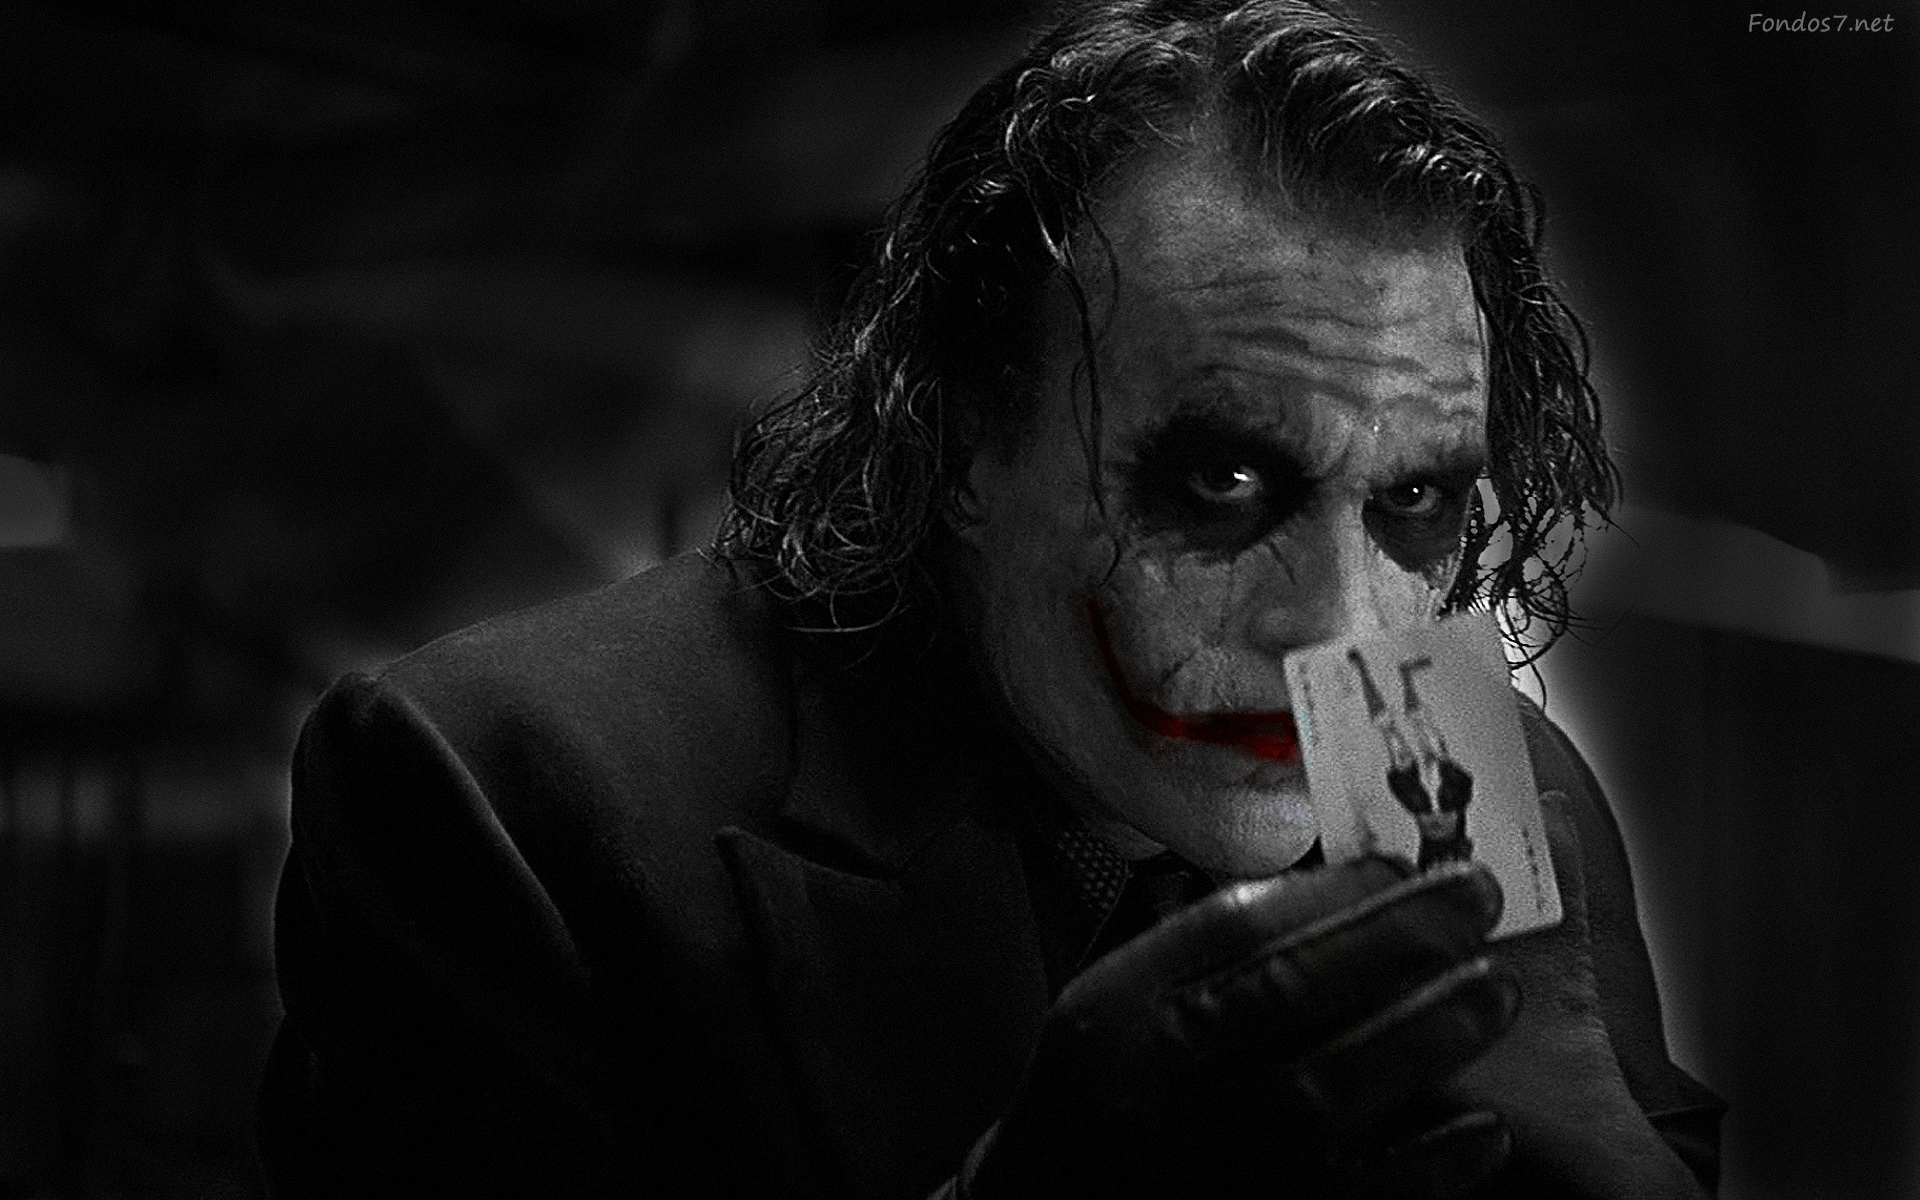 Dark Joker Exclusive HD Wallpapers 337 1920x1200